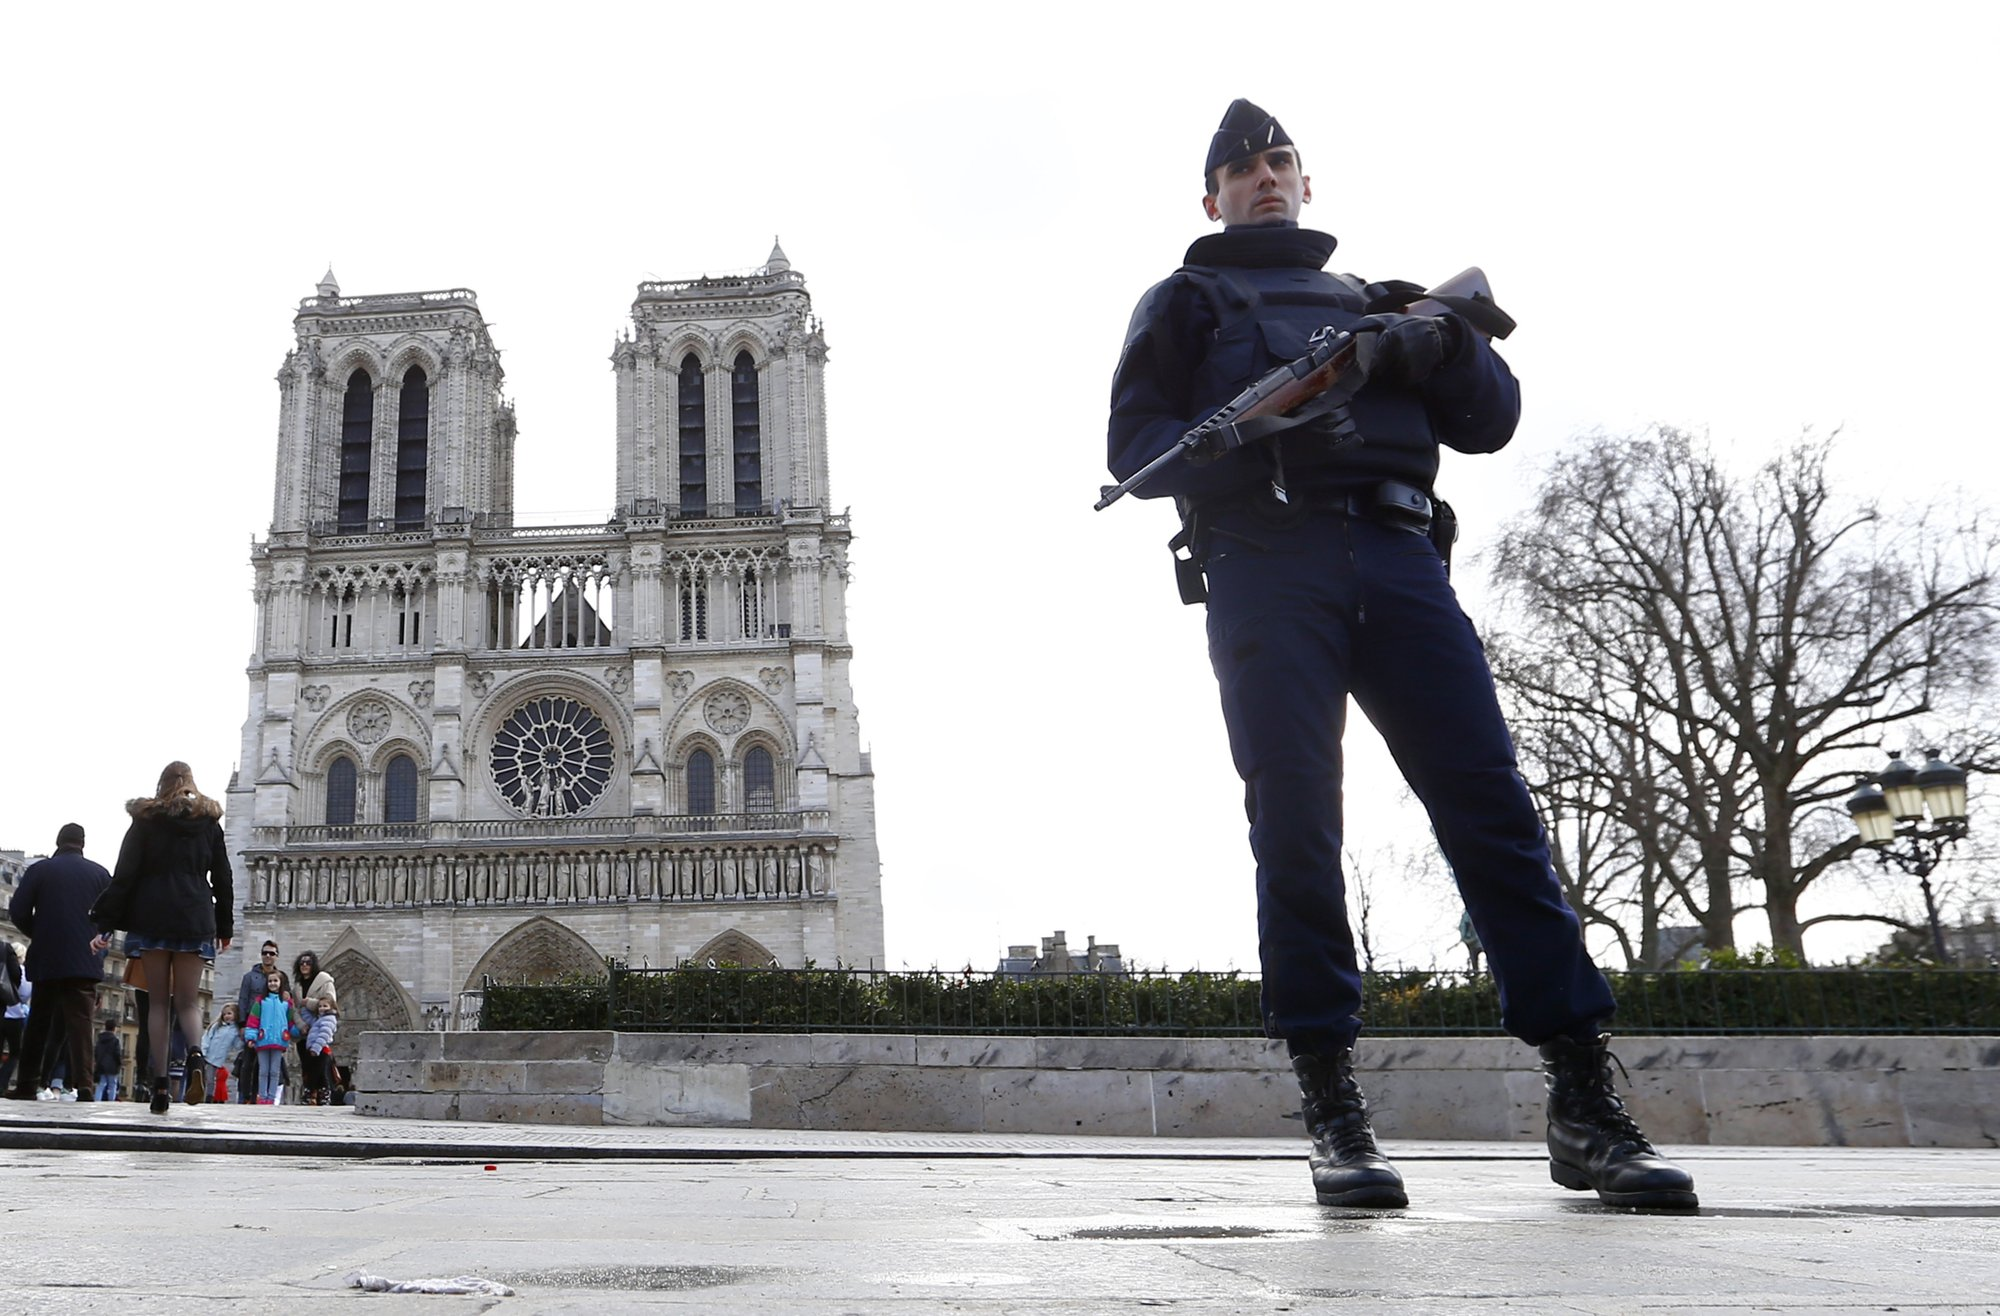 IS women on trial for attempted attack near Notre Dame